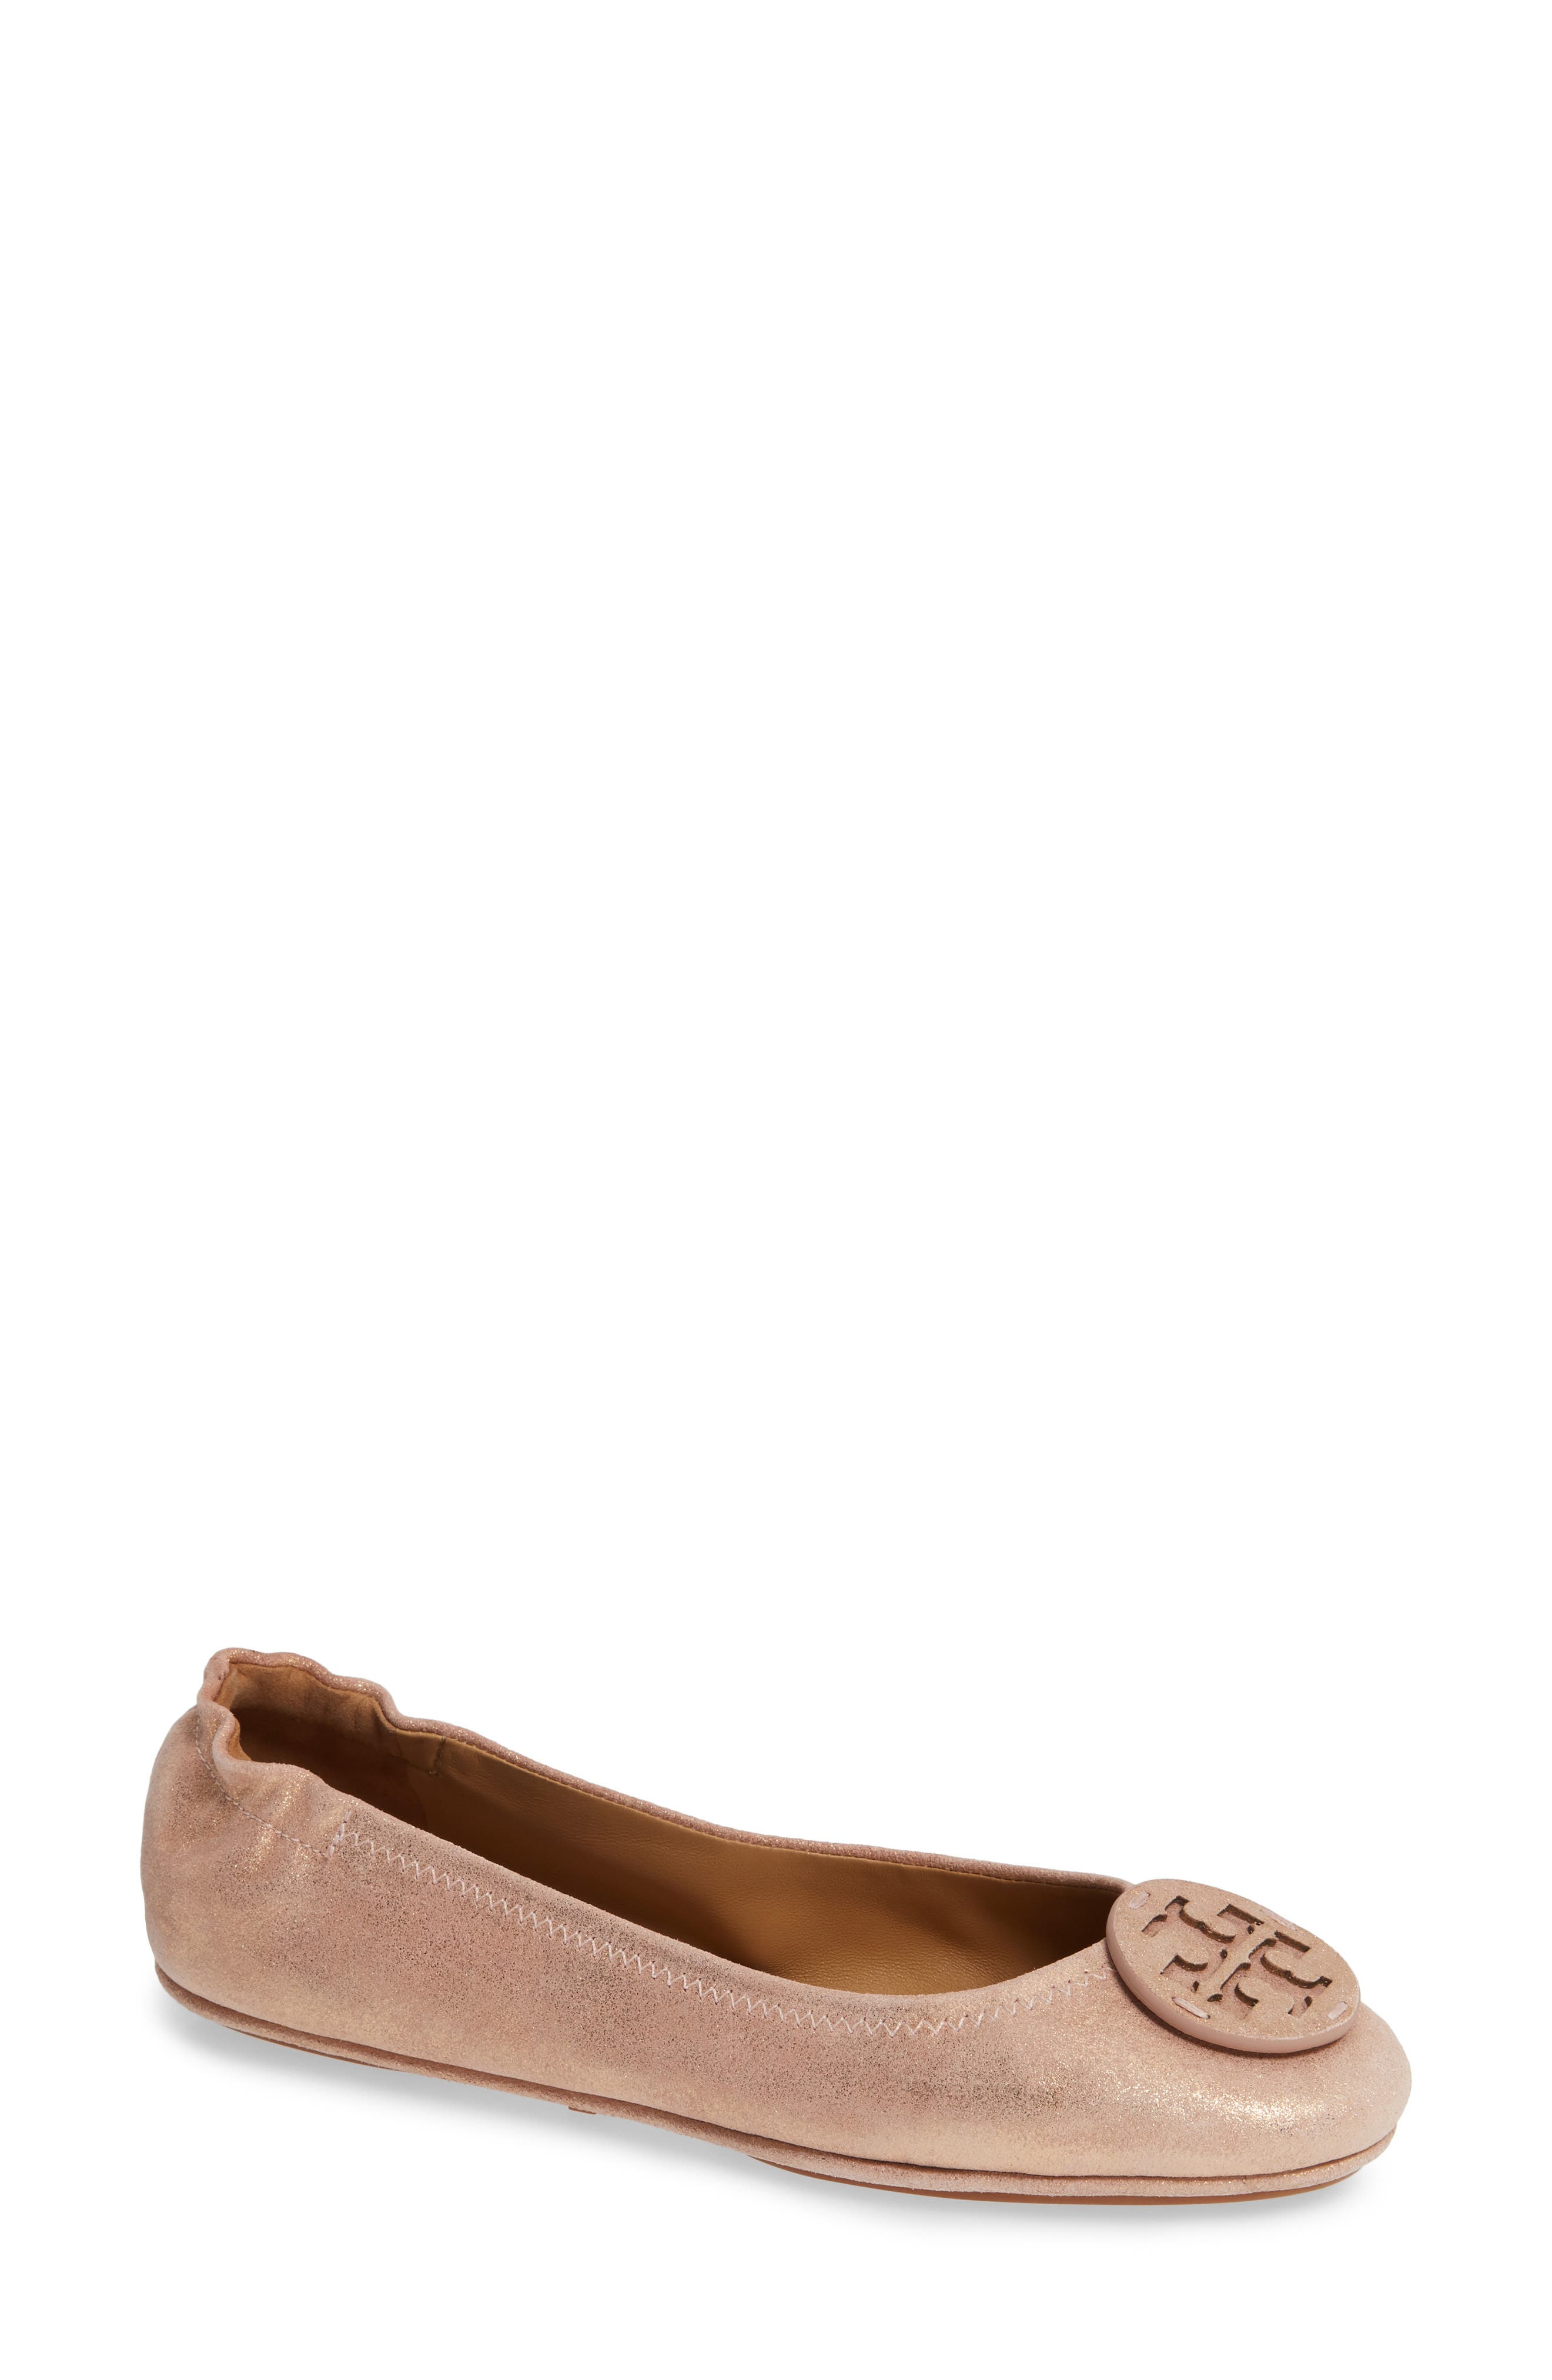 TORY BURCH, Minnie Travel Ballet Flat, Main thumbnail 1, color, 654